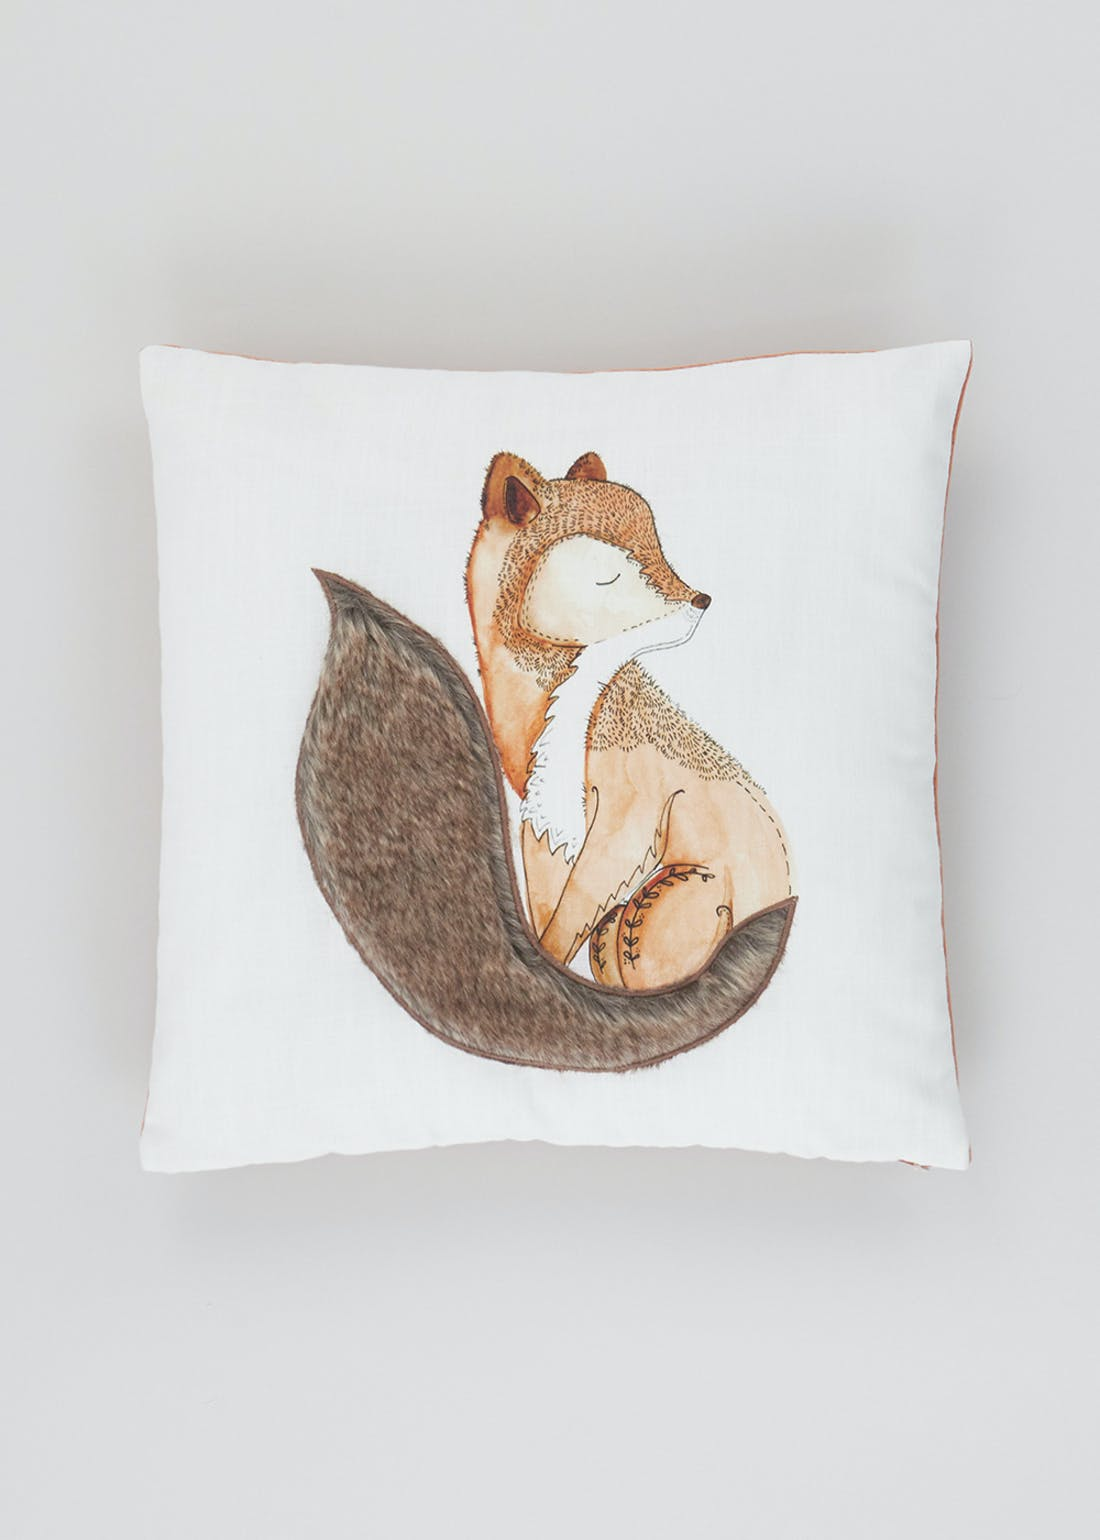 Fur Tail Fox Cushion (46cm x 46cm)